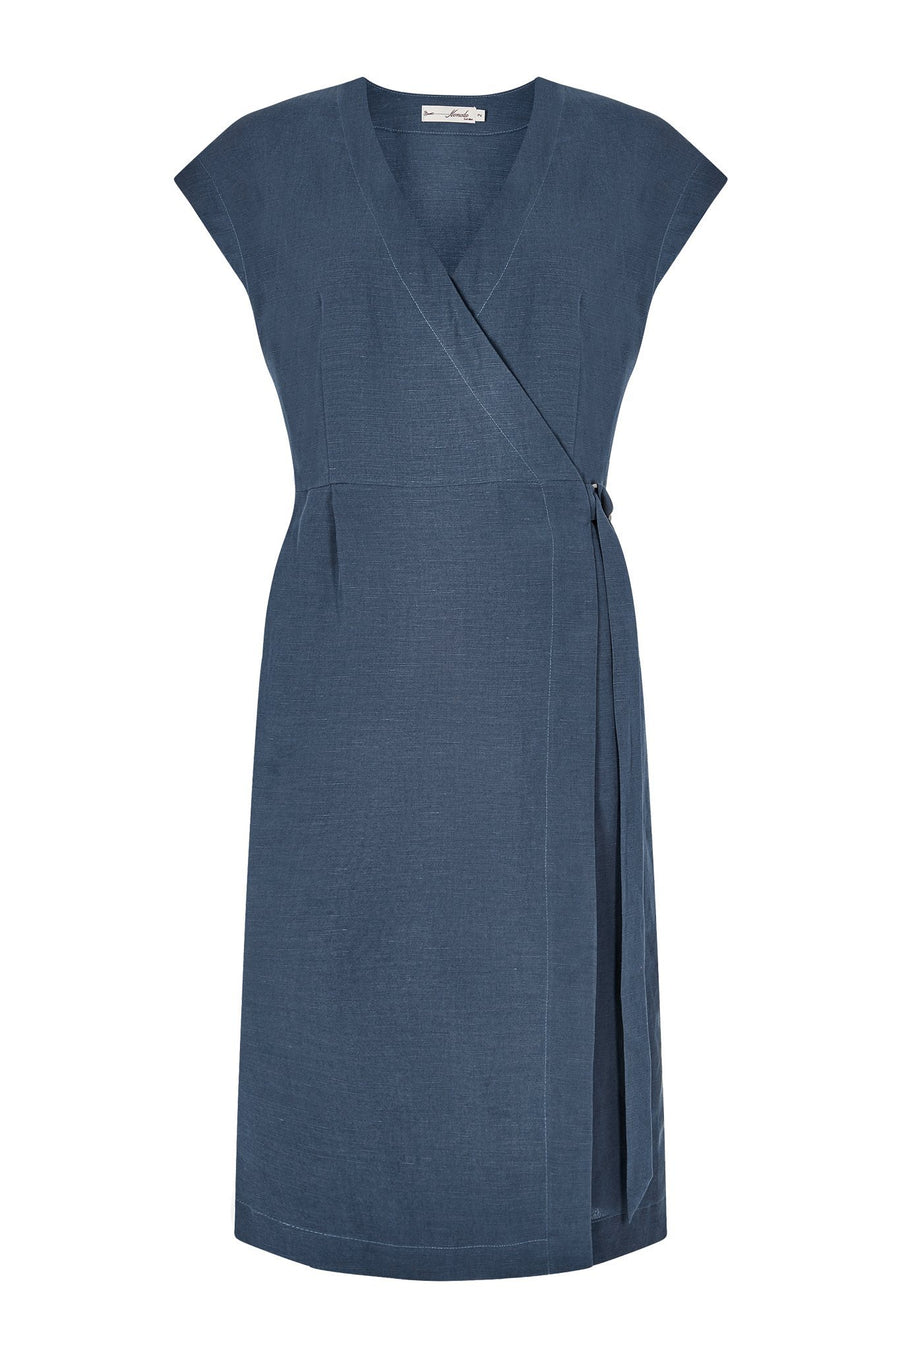 Pansey Tencel Dress Blue Grey - Issara Fairtrade